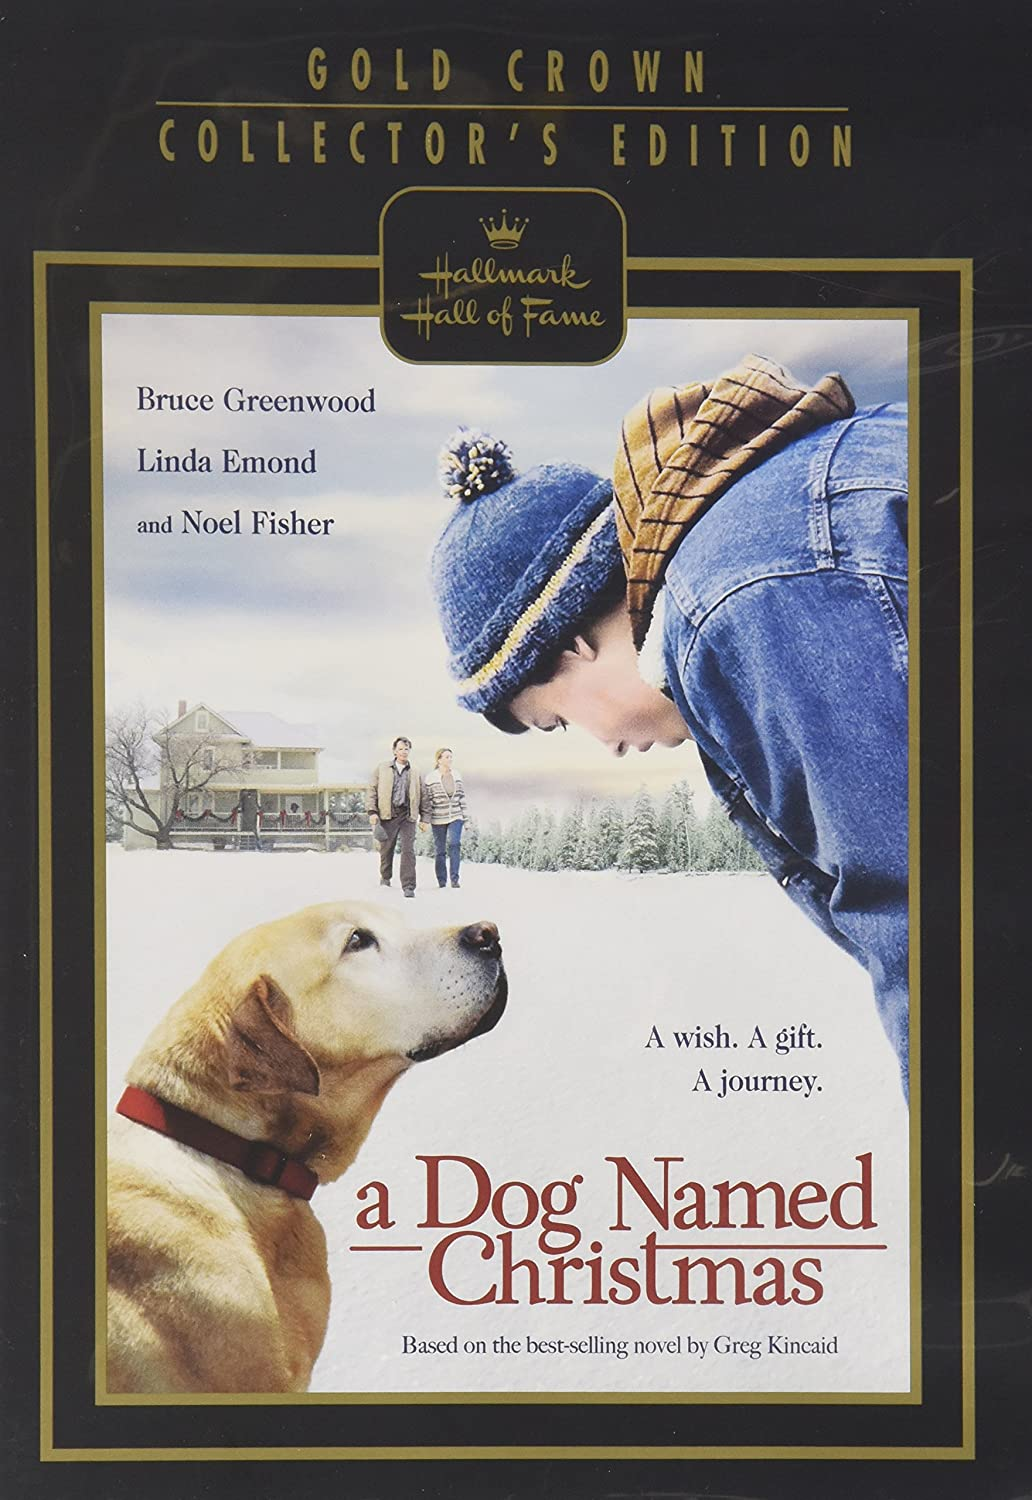 Amazon.com: A Dog Named Christmas DVD (Hallmark Hall of Fame): Linda ...